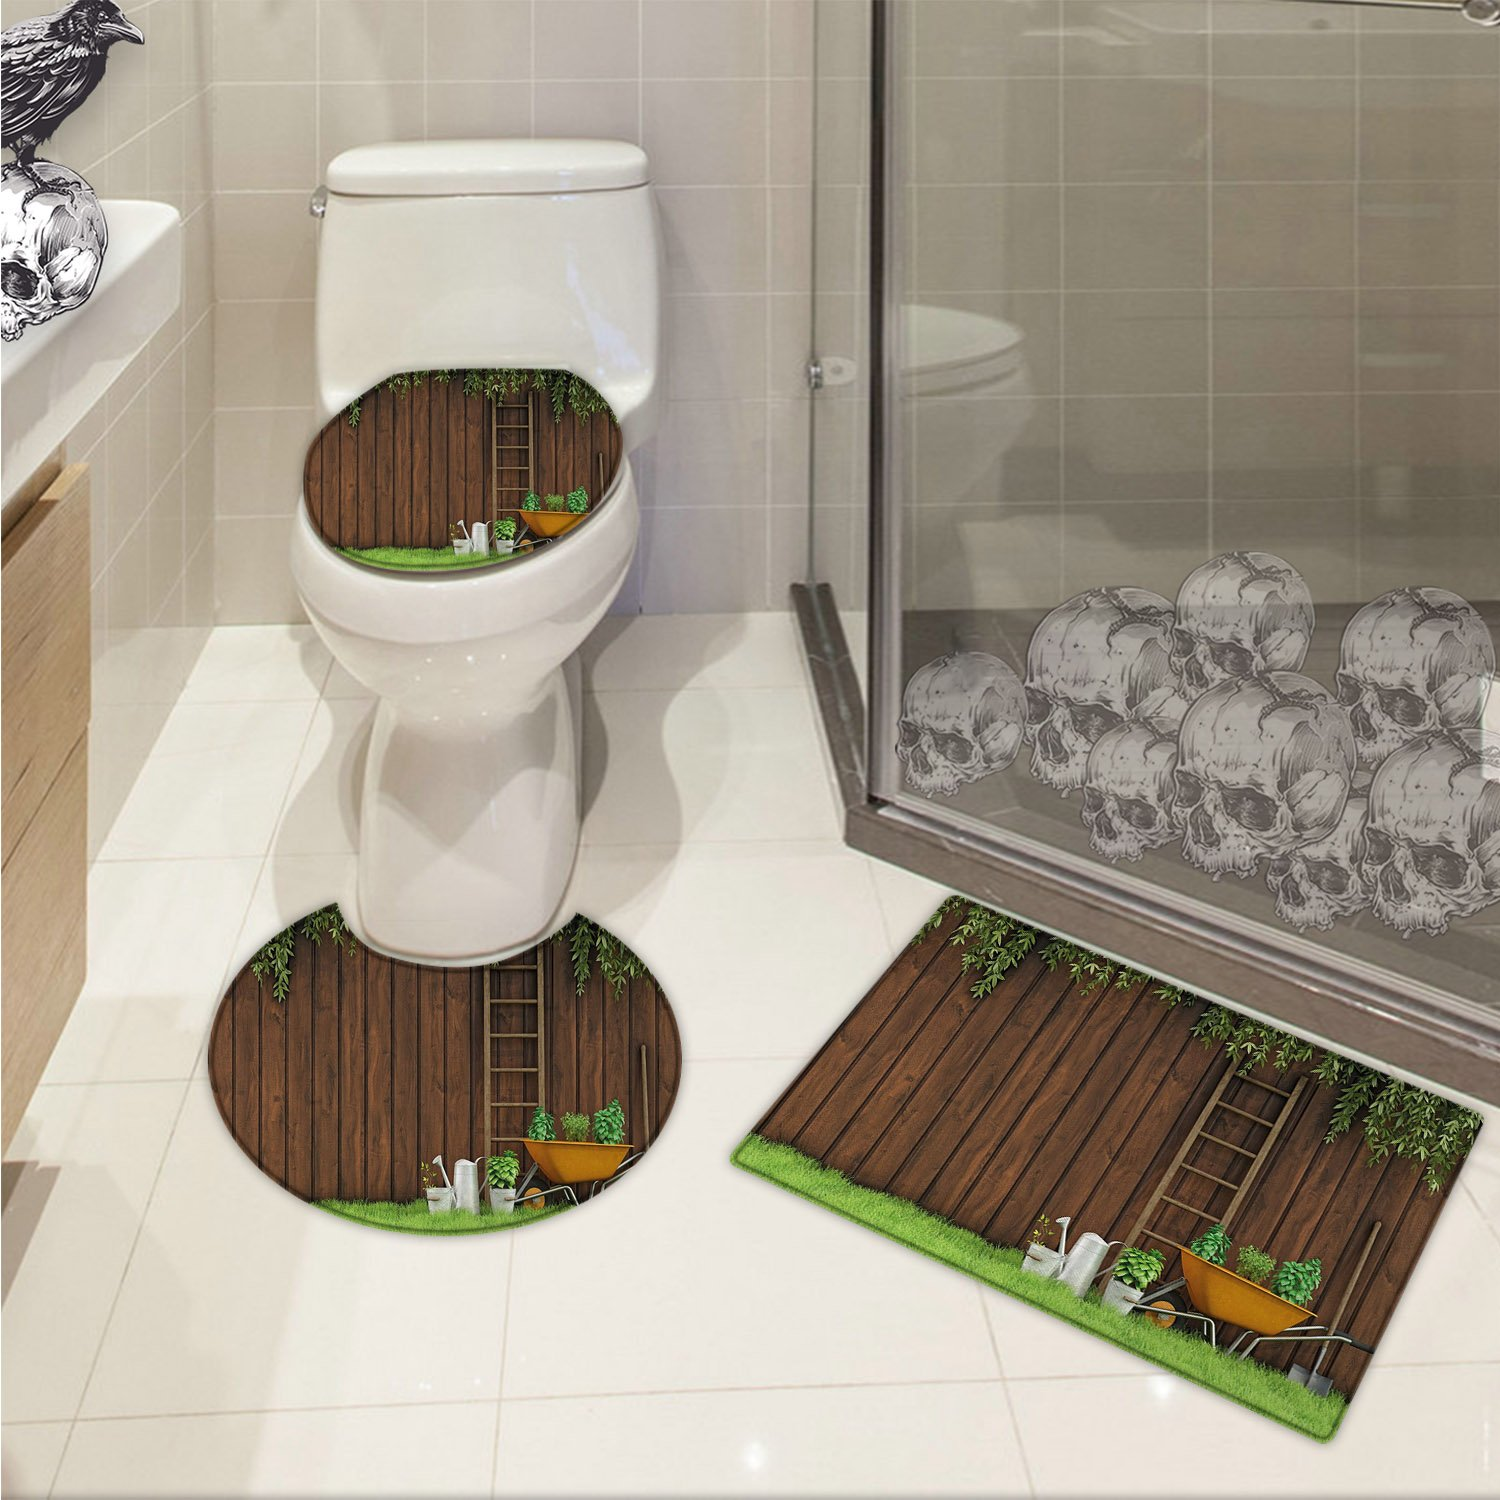 Farmland 3D digital printing Gardening Material Tools on the Backyard with Shovel and Bucket Design Print 3 Piece Shower Mat set Green Brown